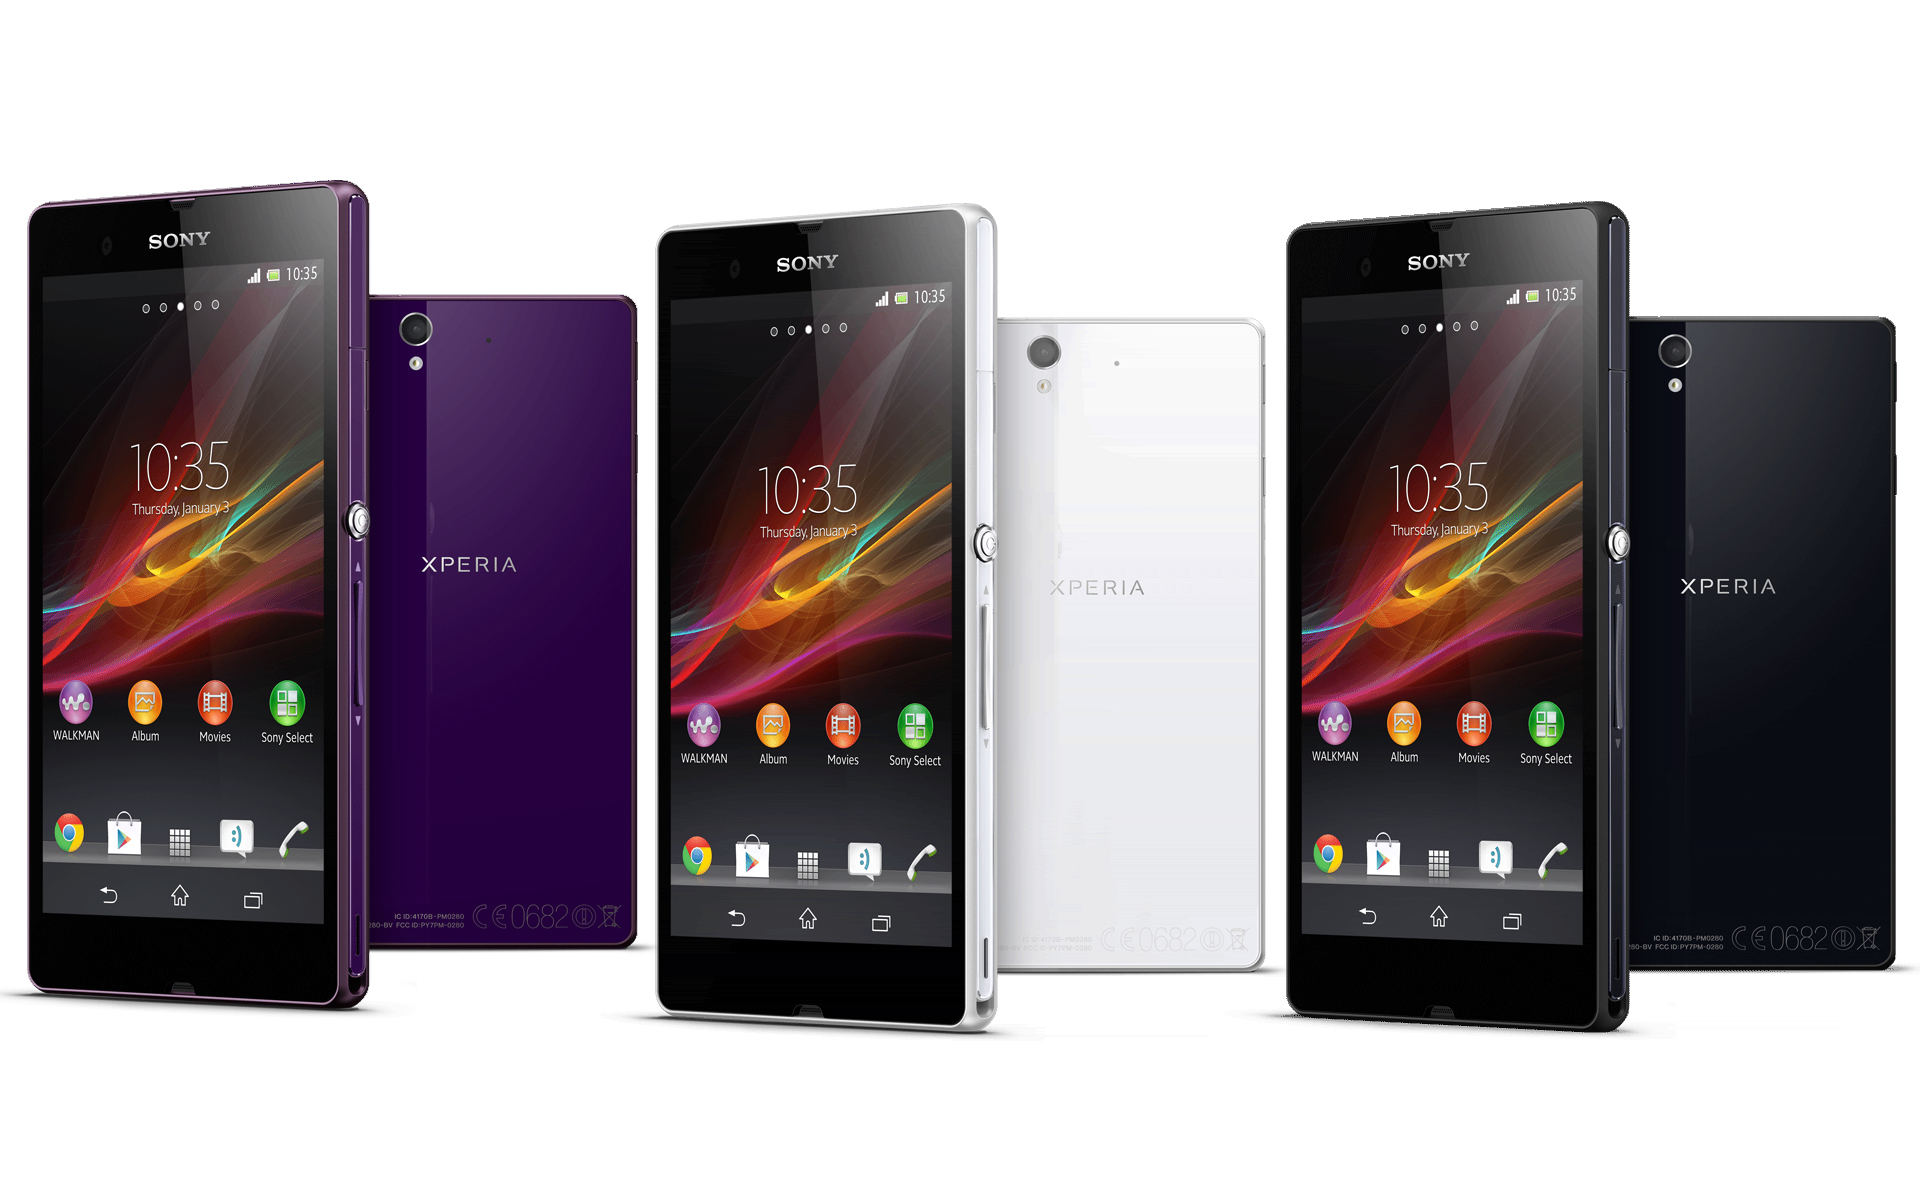 Sony Xperia Z Android 4.2.2 Jelly Bean-update rolt uit